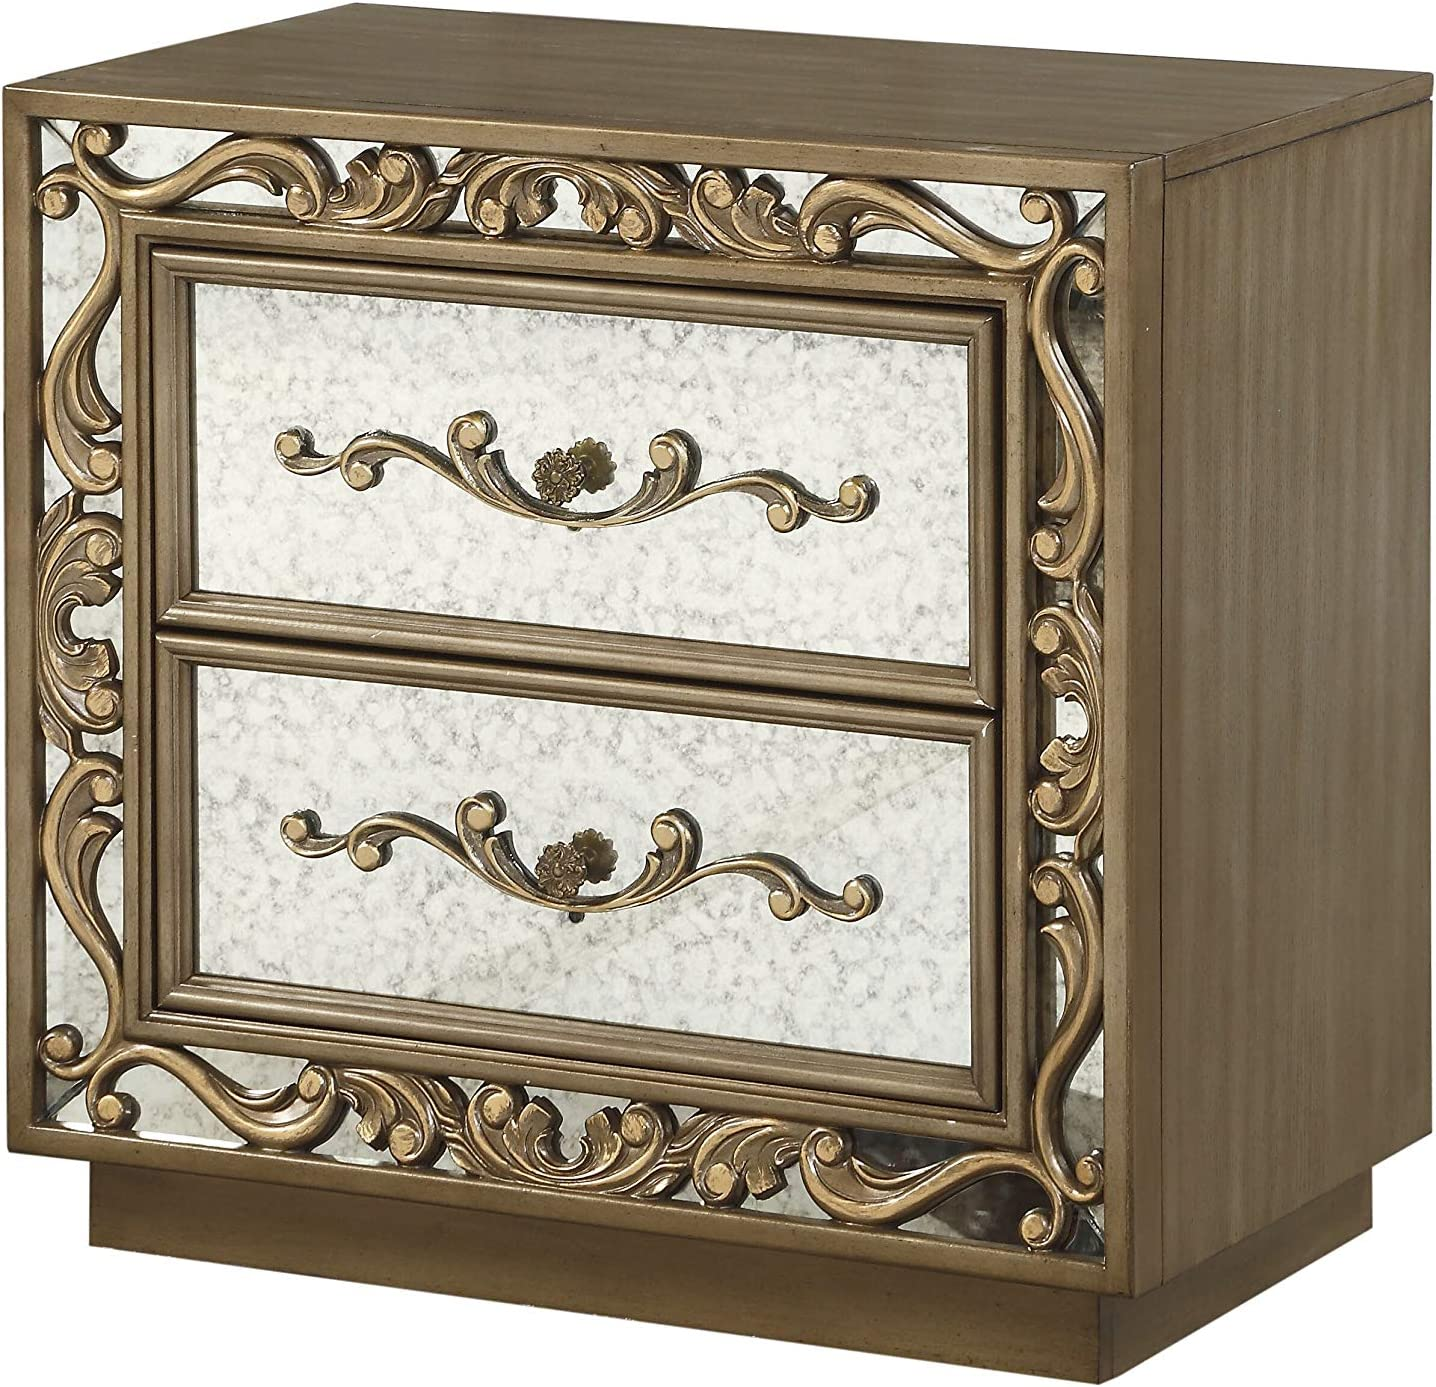 ACME Furniture Orianne Nightstand, Antique Gold and Mirrored